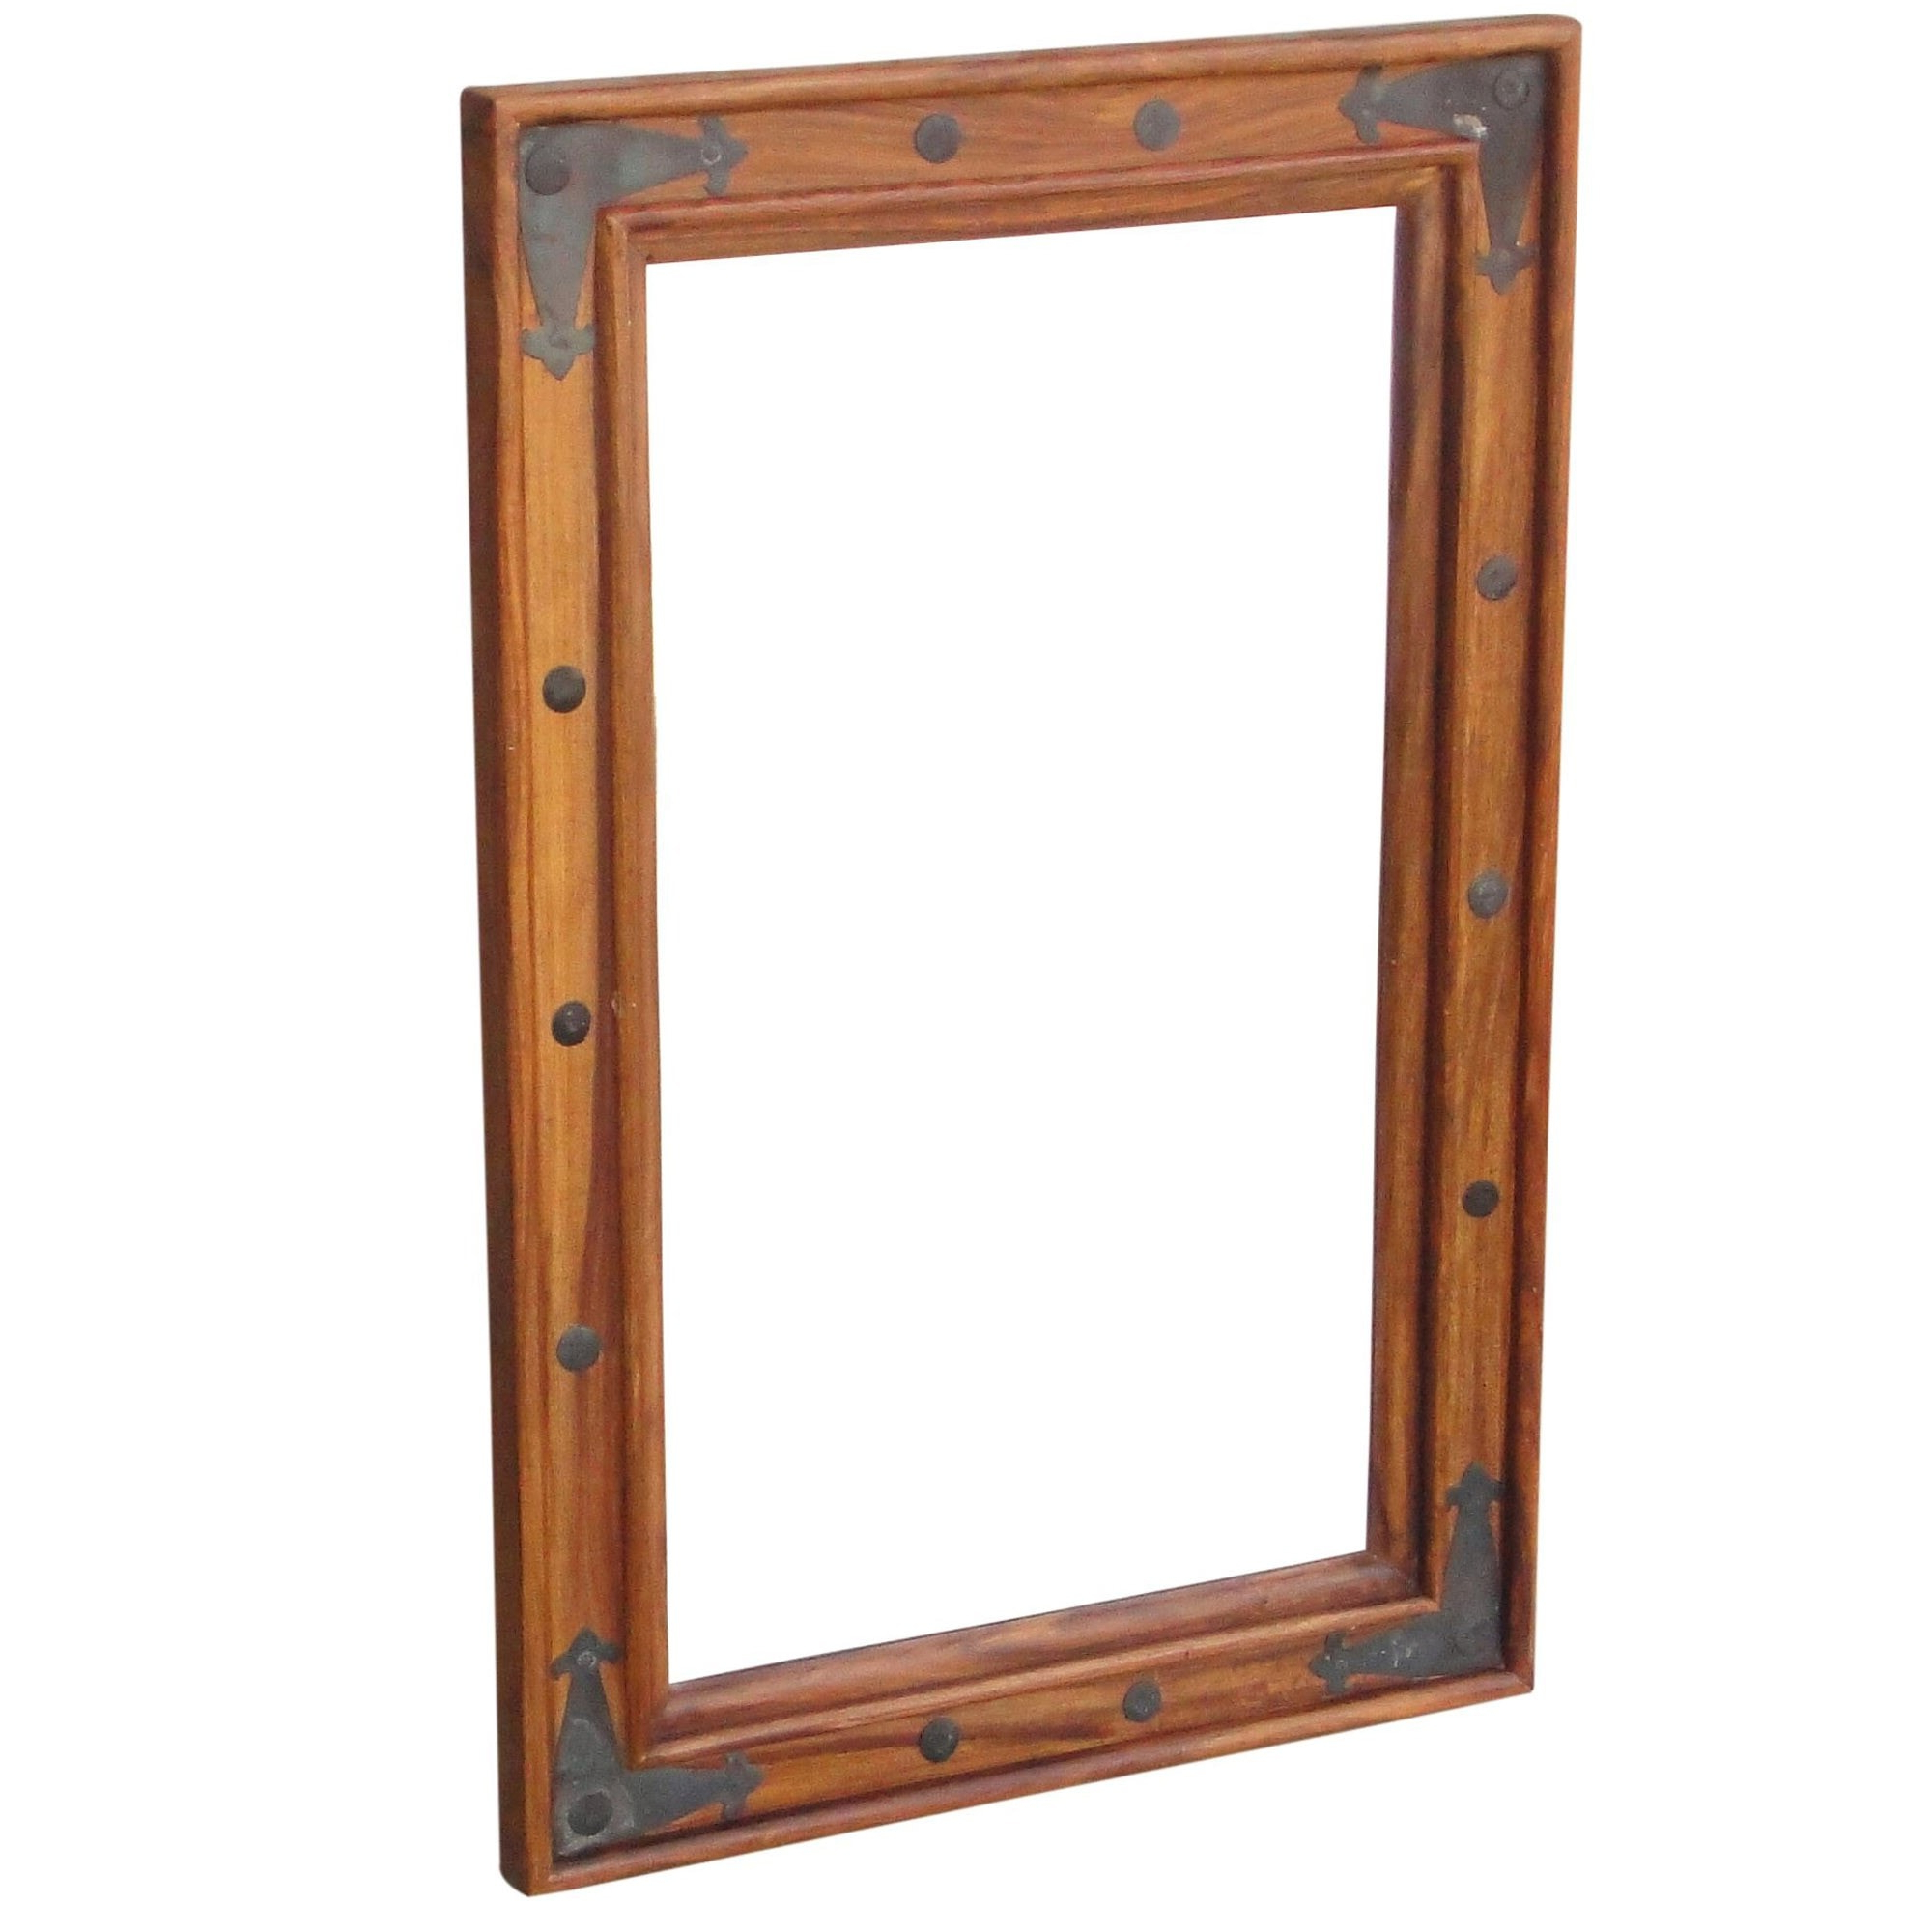 Large Wooden Wall Mirrors Throughout Favorite Ganga Wooden Mirror (View 15 of 20)